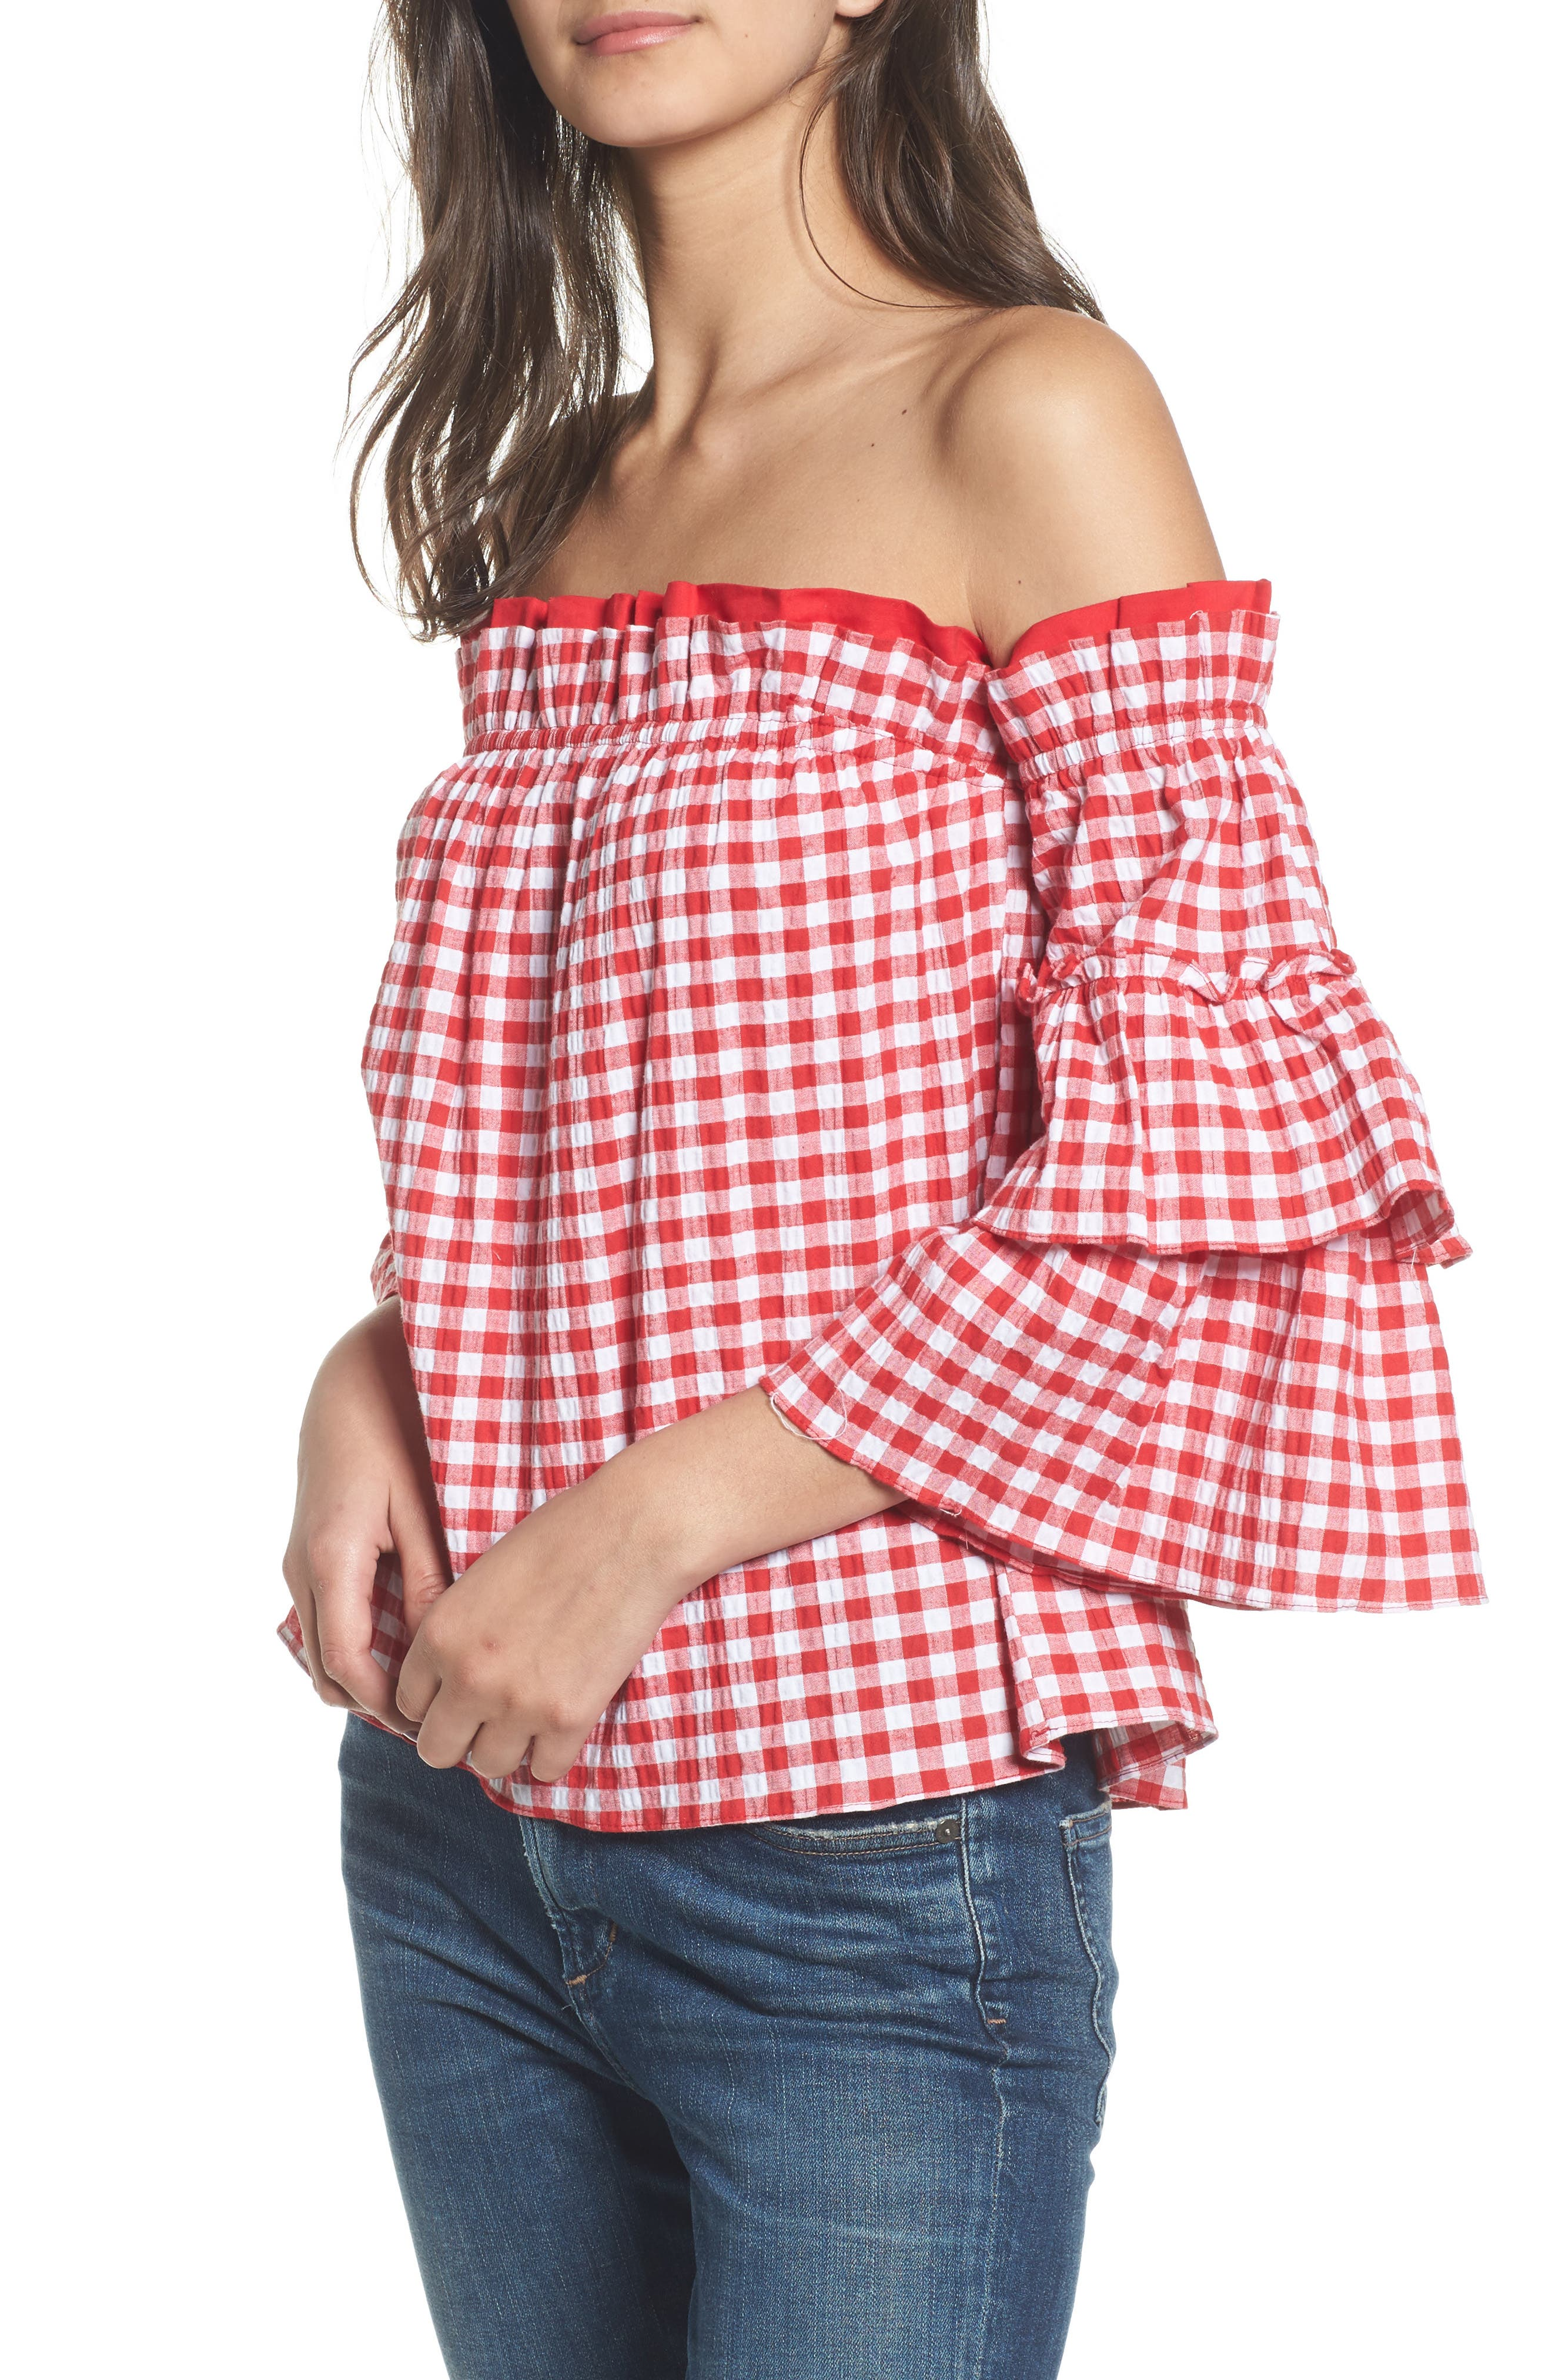 Sabina Off the Shoulder Top,                             Main thumbnail 1, color,                             Red/ White Multi